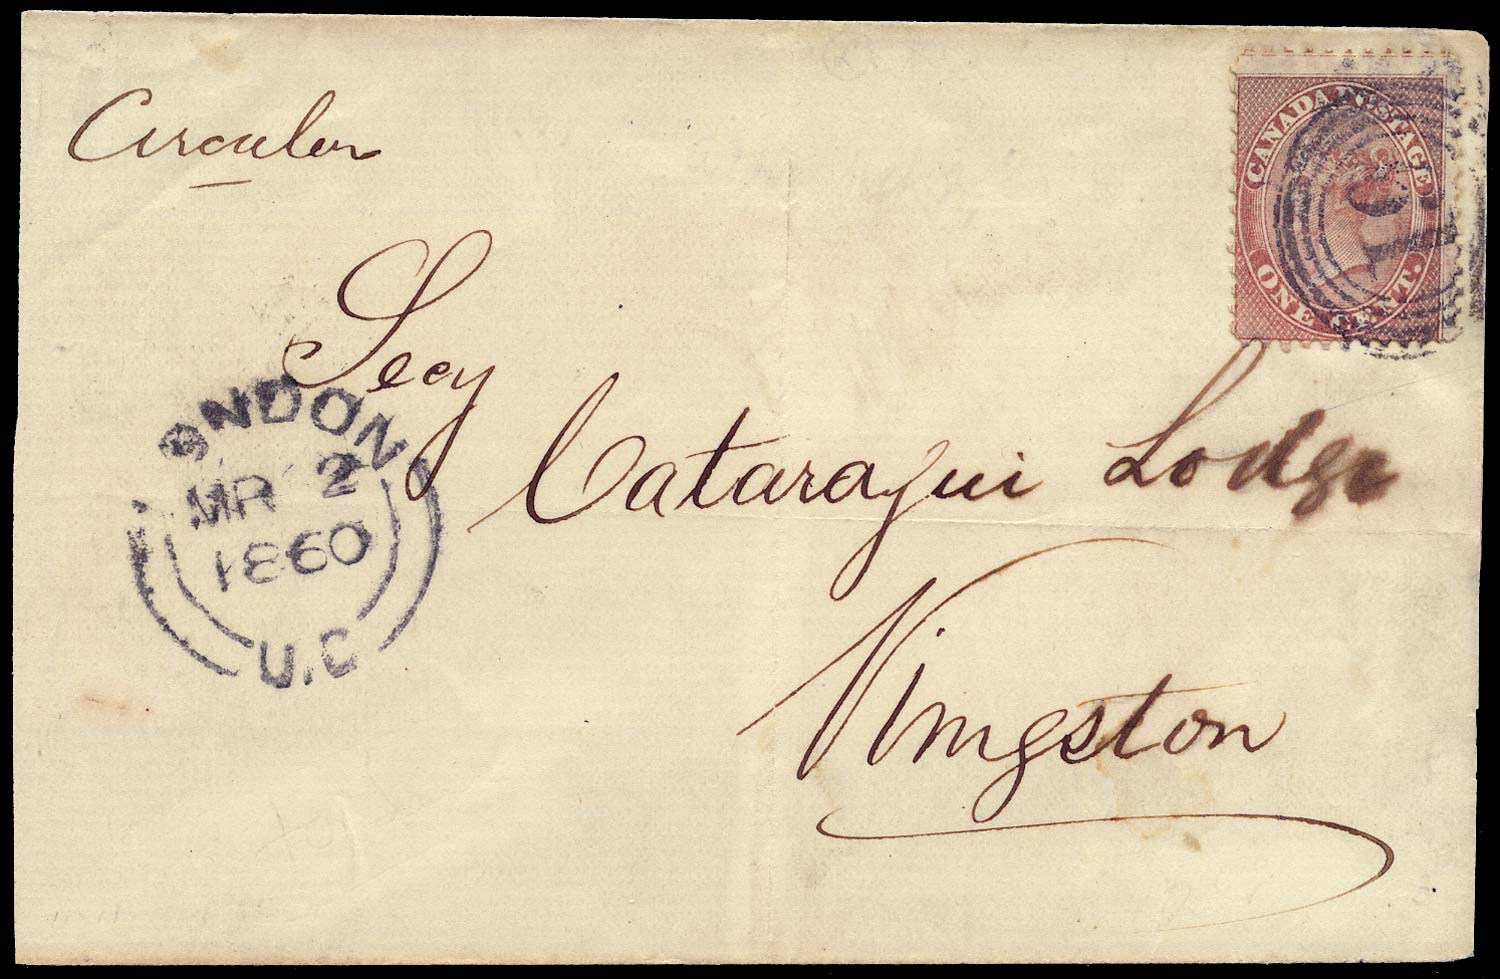 CANADA 1860  SG29 Cover from London to Kingston at 1c circular rate